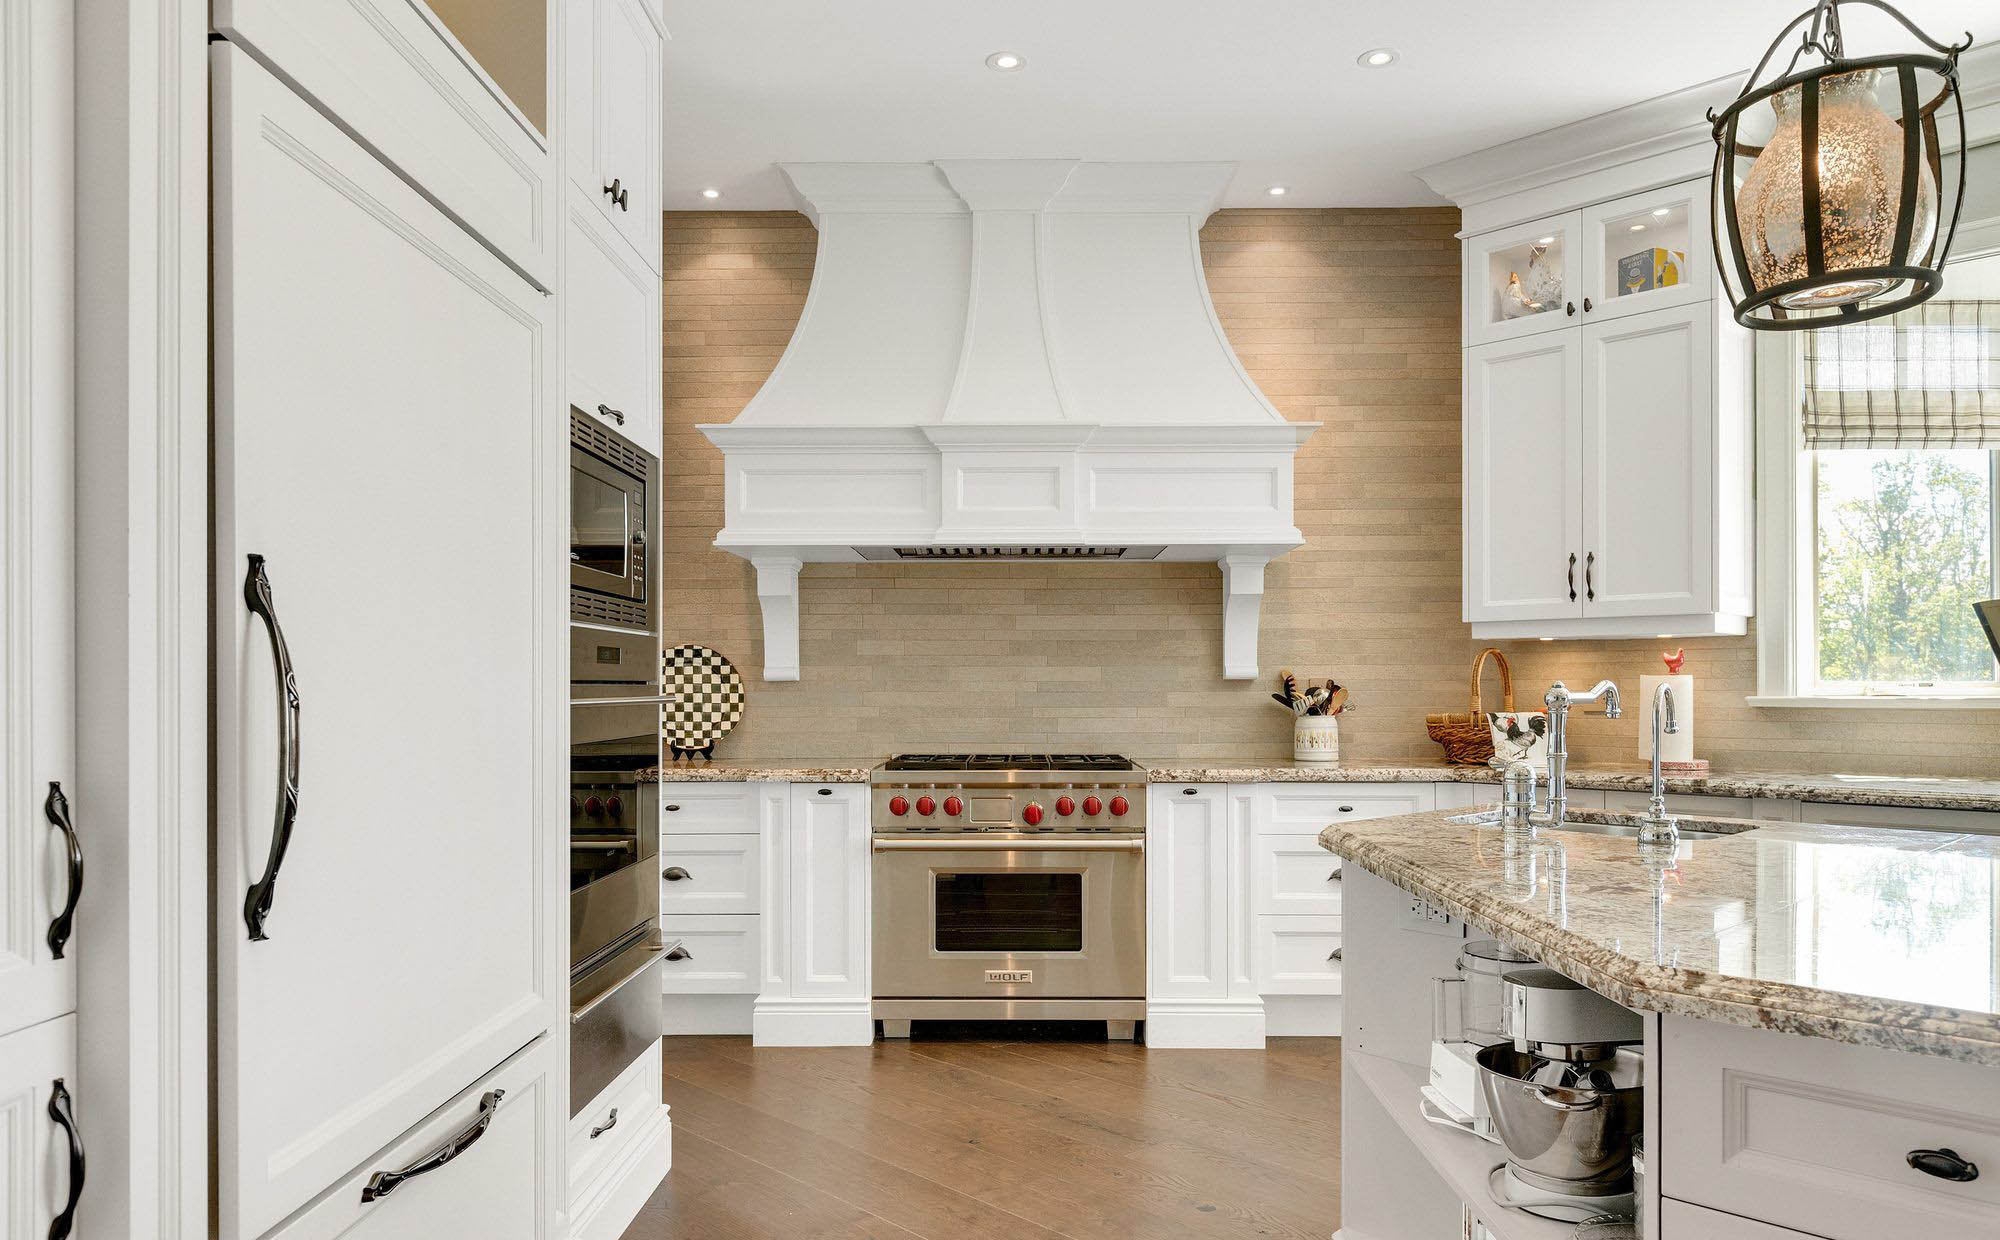 "36"" Wolf range in a beautiful luxury kitchen. Wood floors with white cabinets, stone countertops and tan stone backsplash."